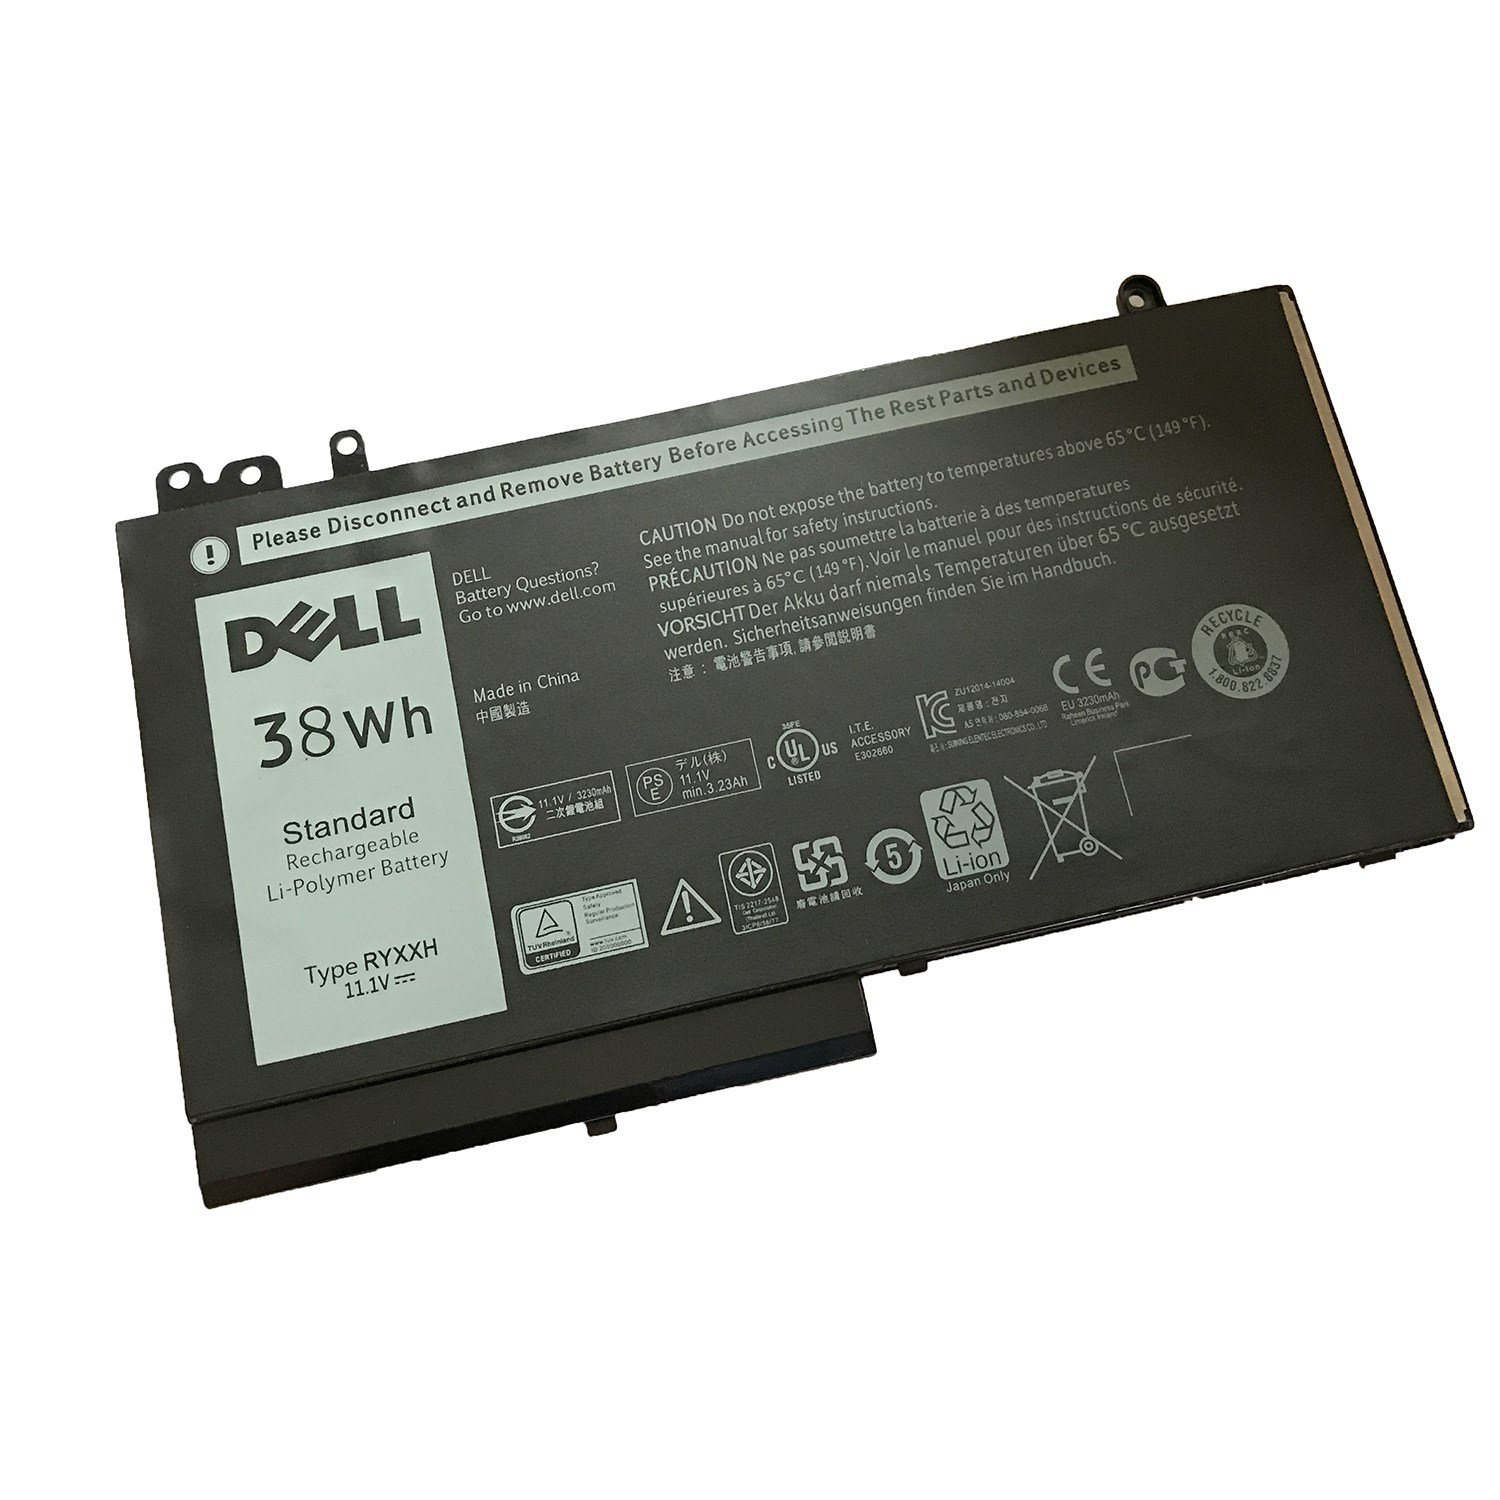 Batterie originale Dell RYXXH, 0VY9ND, 9P4D2, R5MD0 11.1V 38Wh pour ordinateur portable Dell E3150, Latitude 12 5000 séries